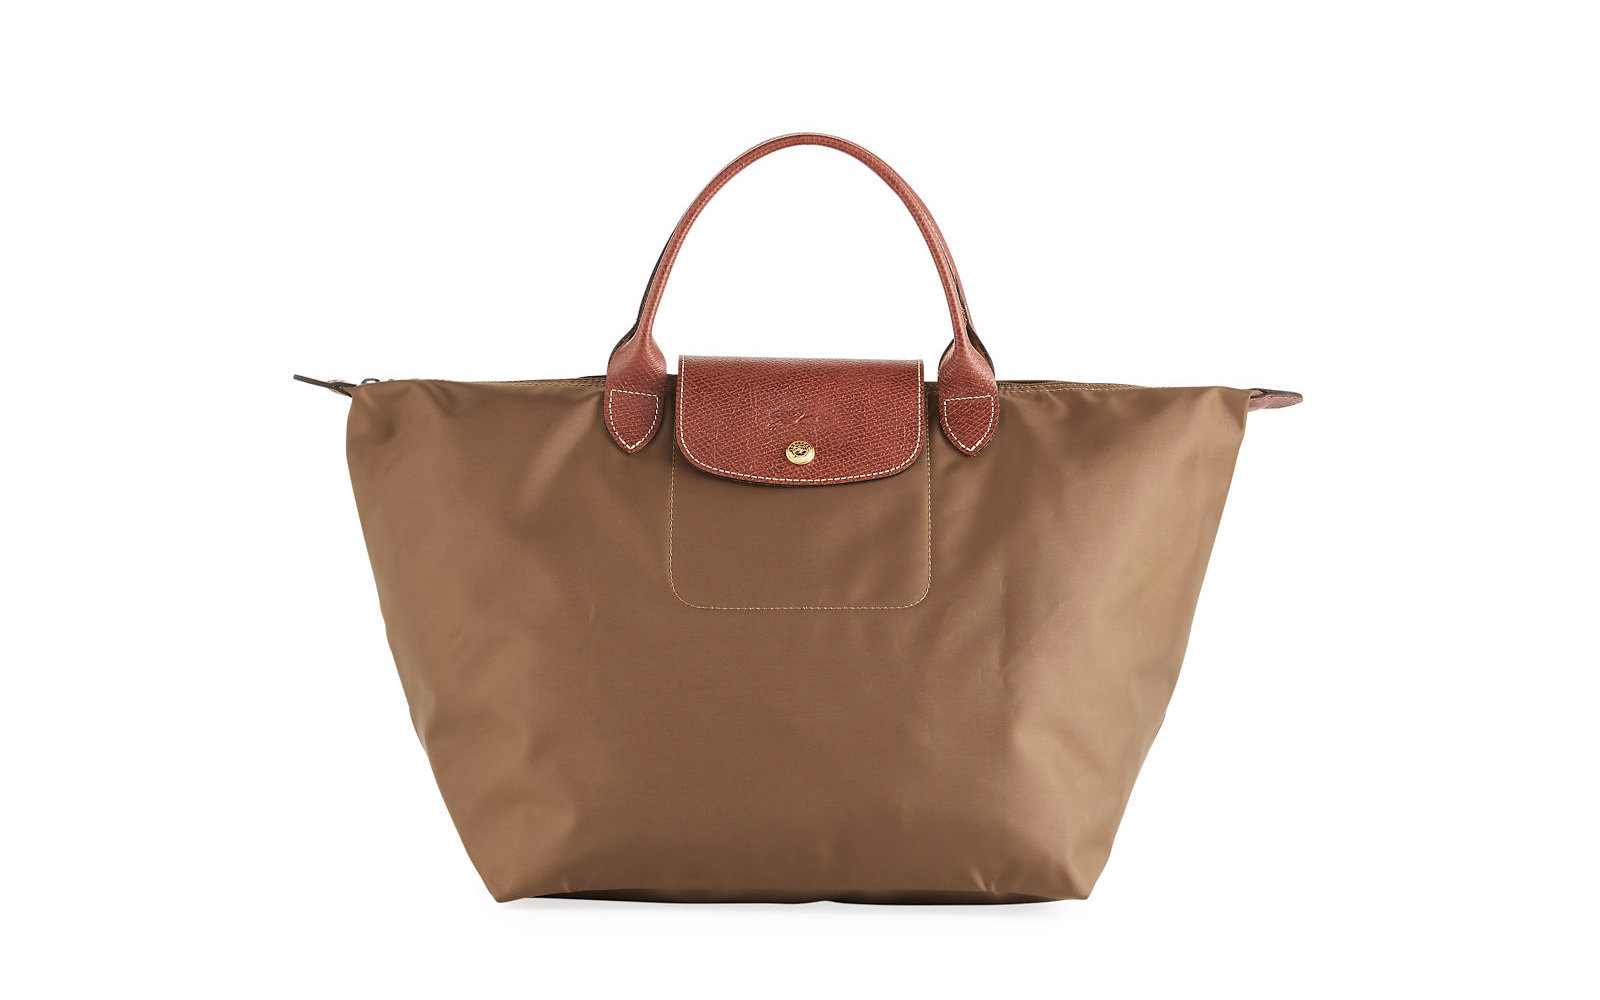 Longchamp s Best Travel Bags Are Majorly on Sale Right Now  0e3b0b47cedb9